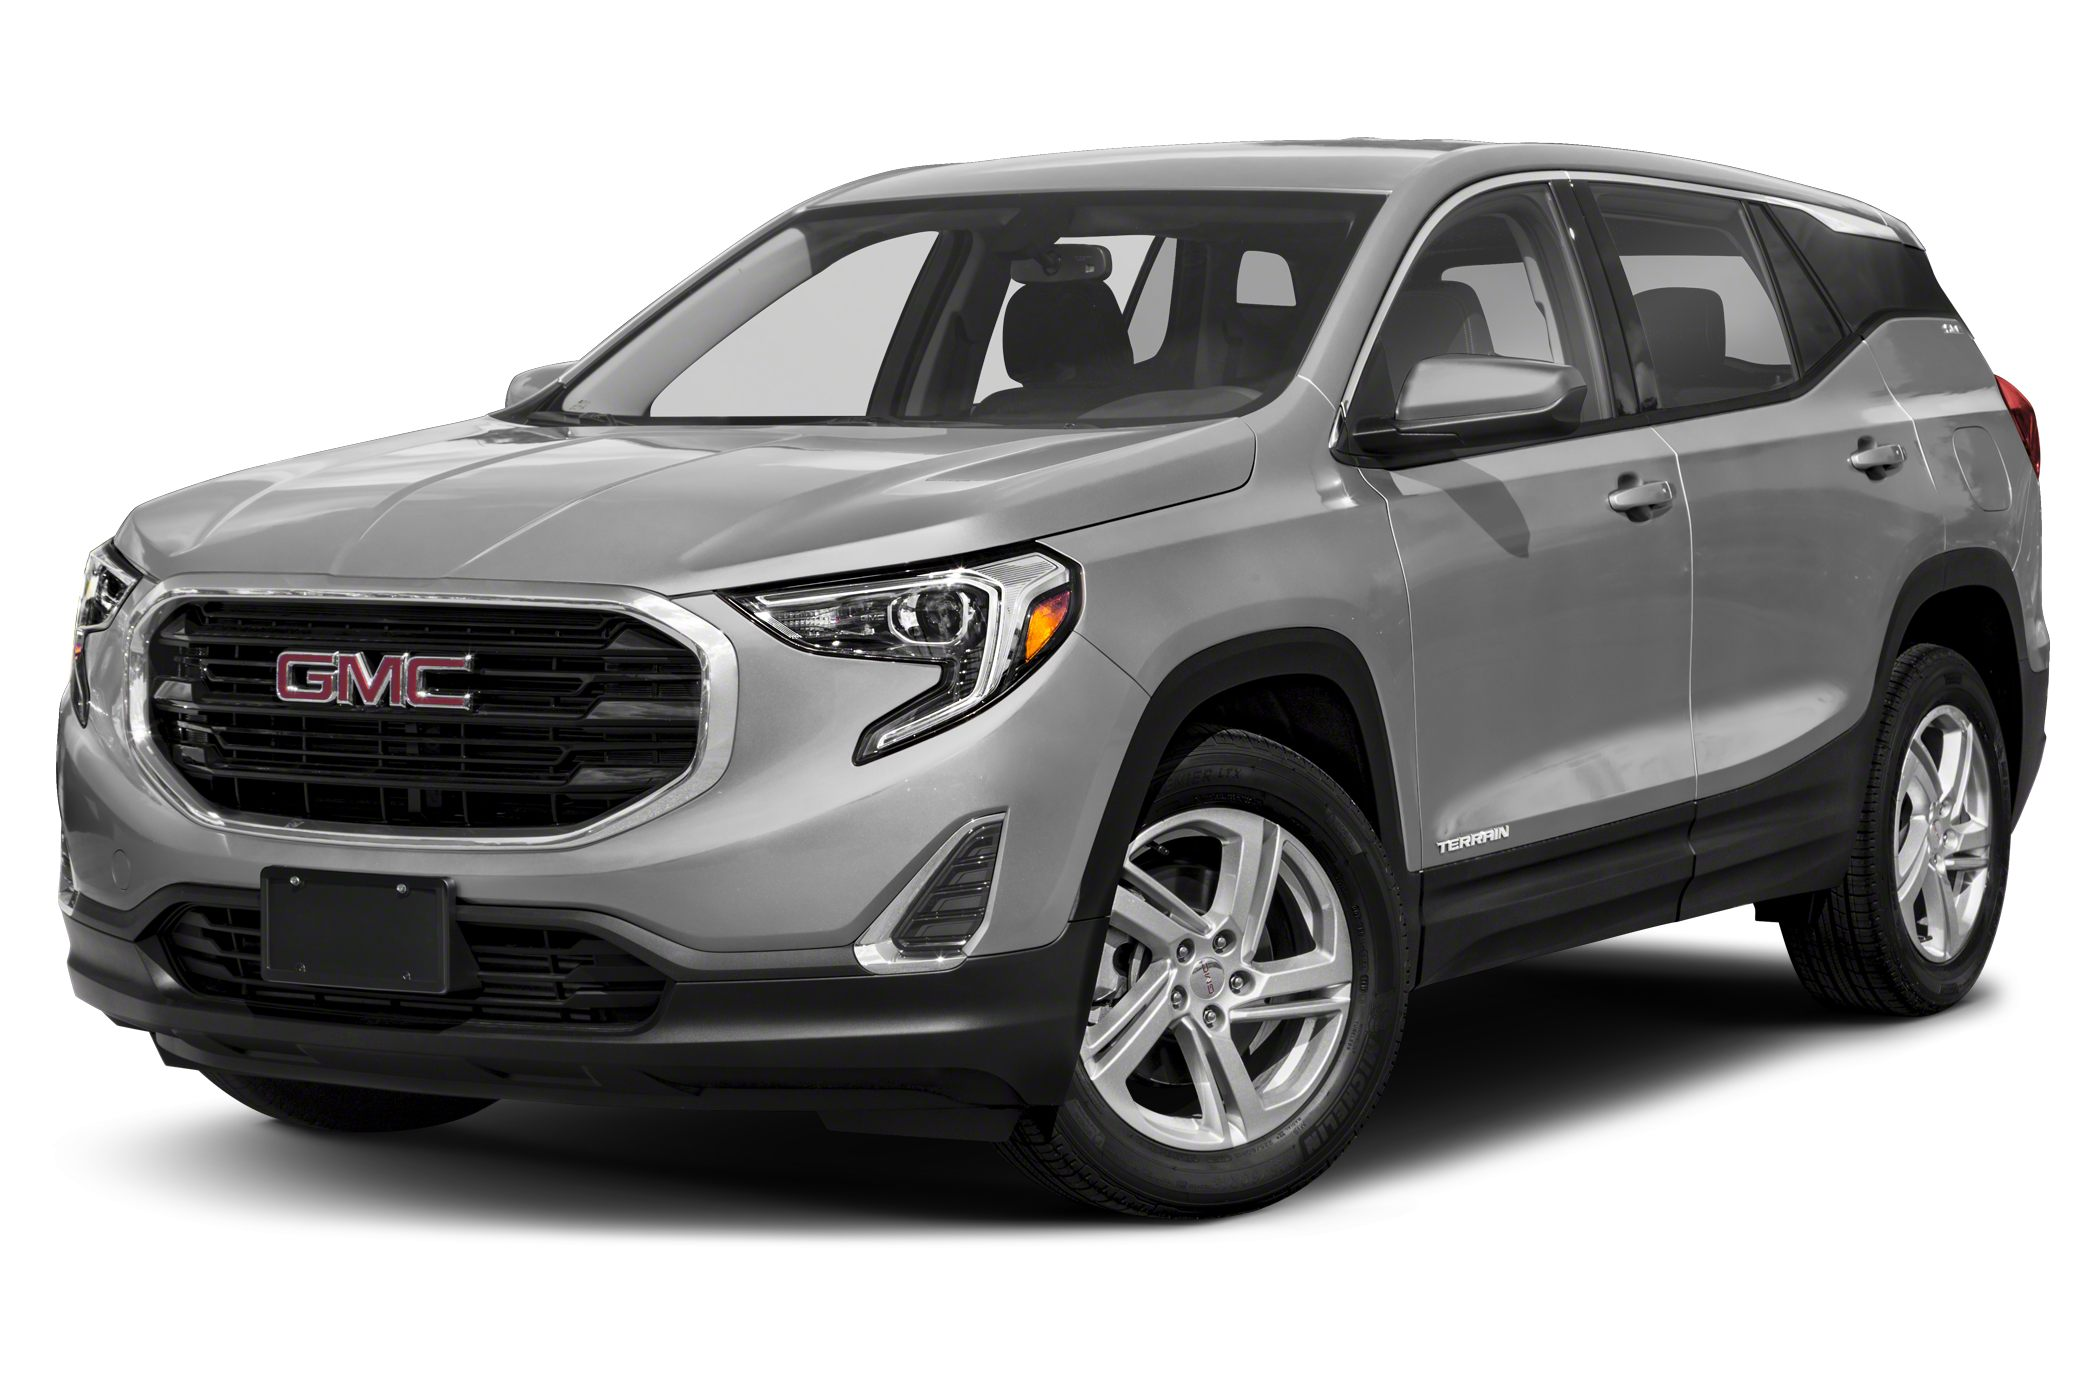 2019 Gmc Terrain Rebates And Incentives